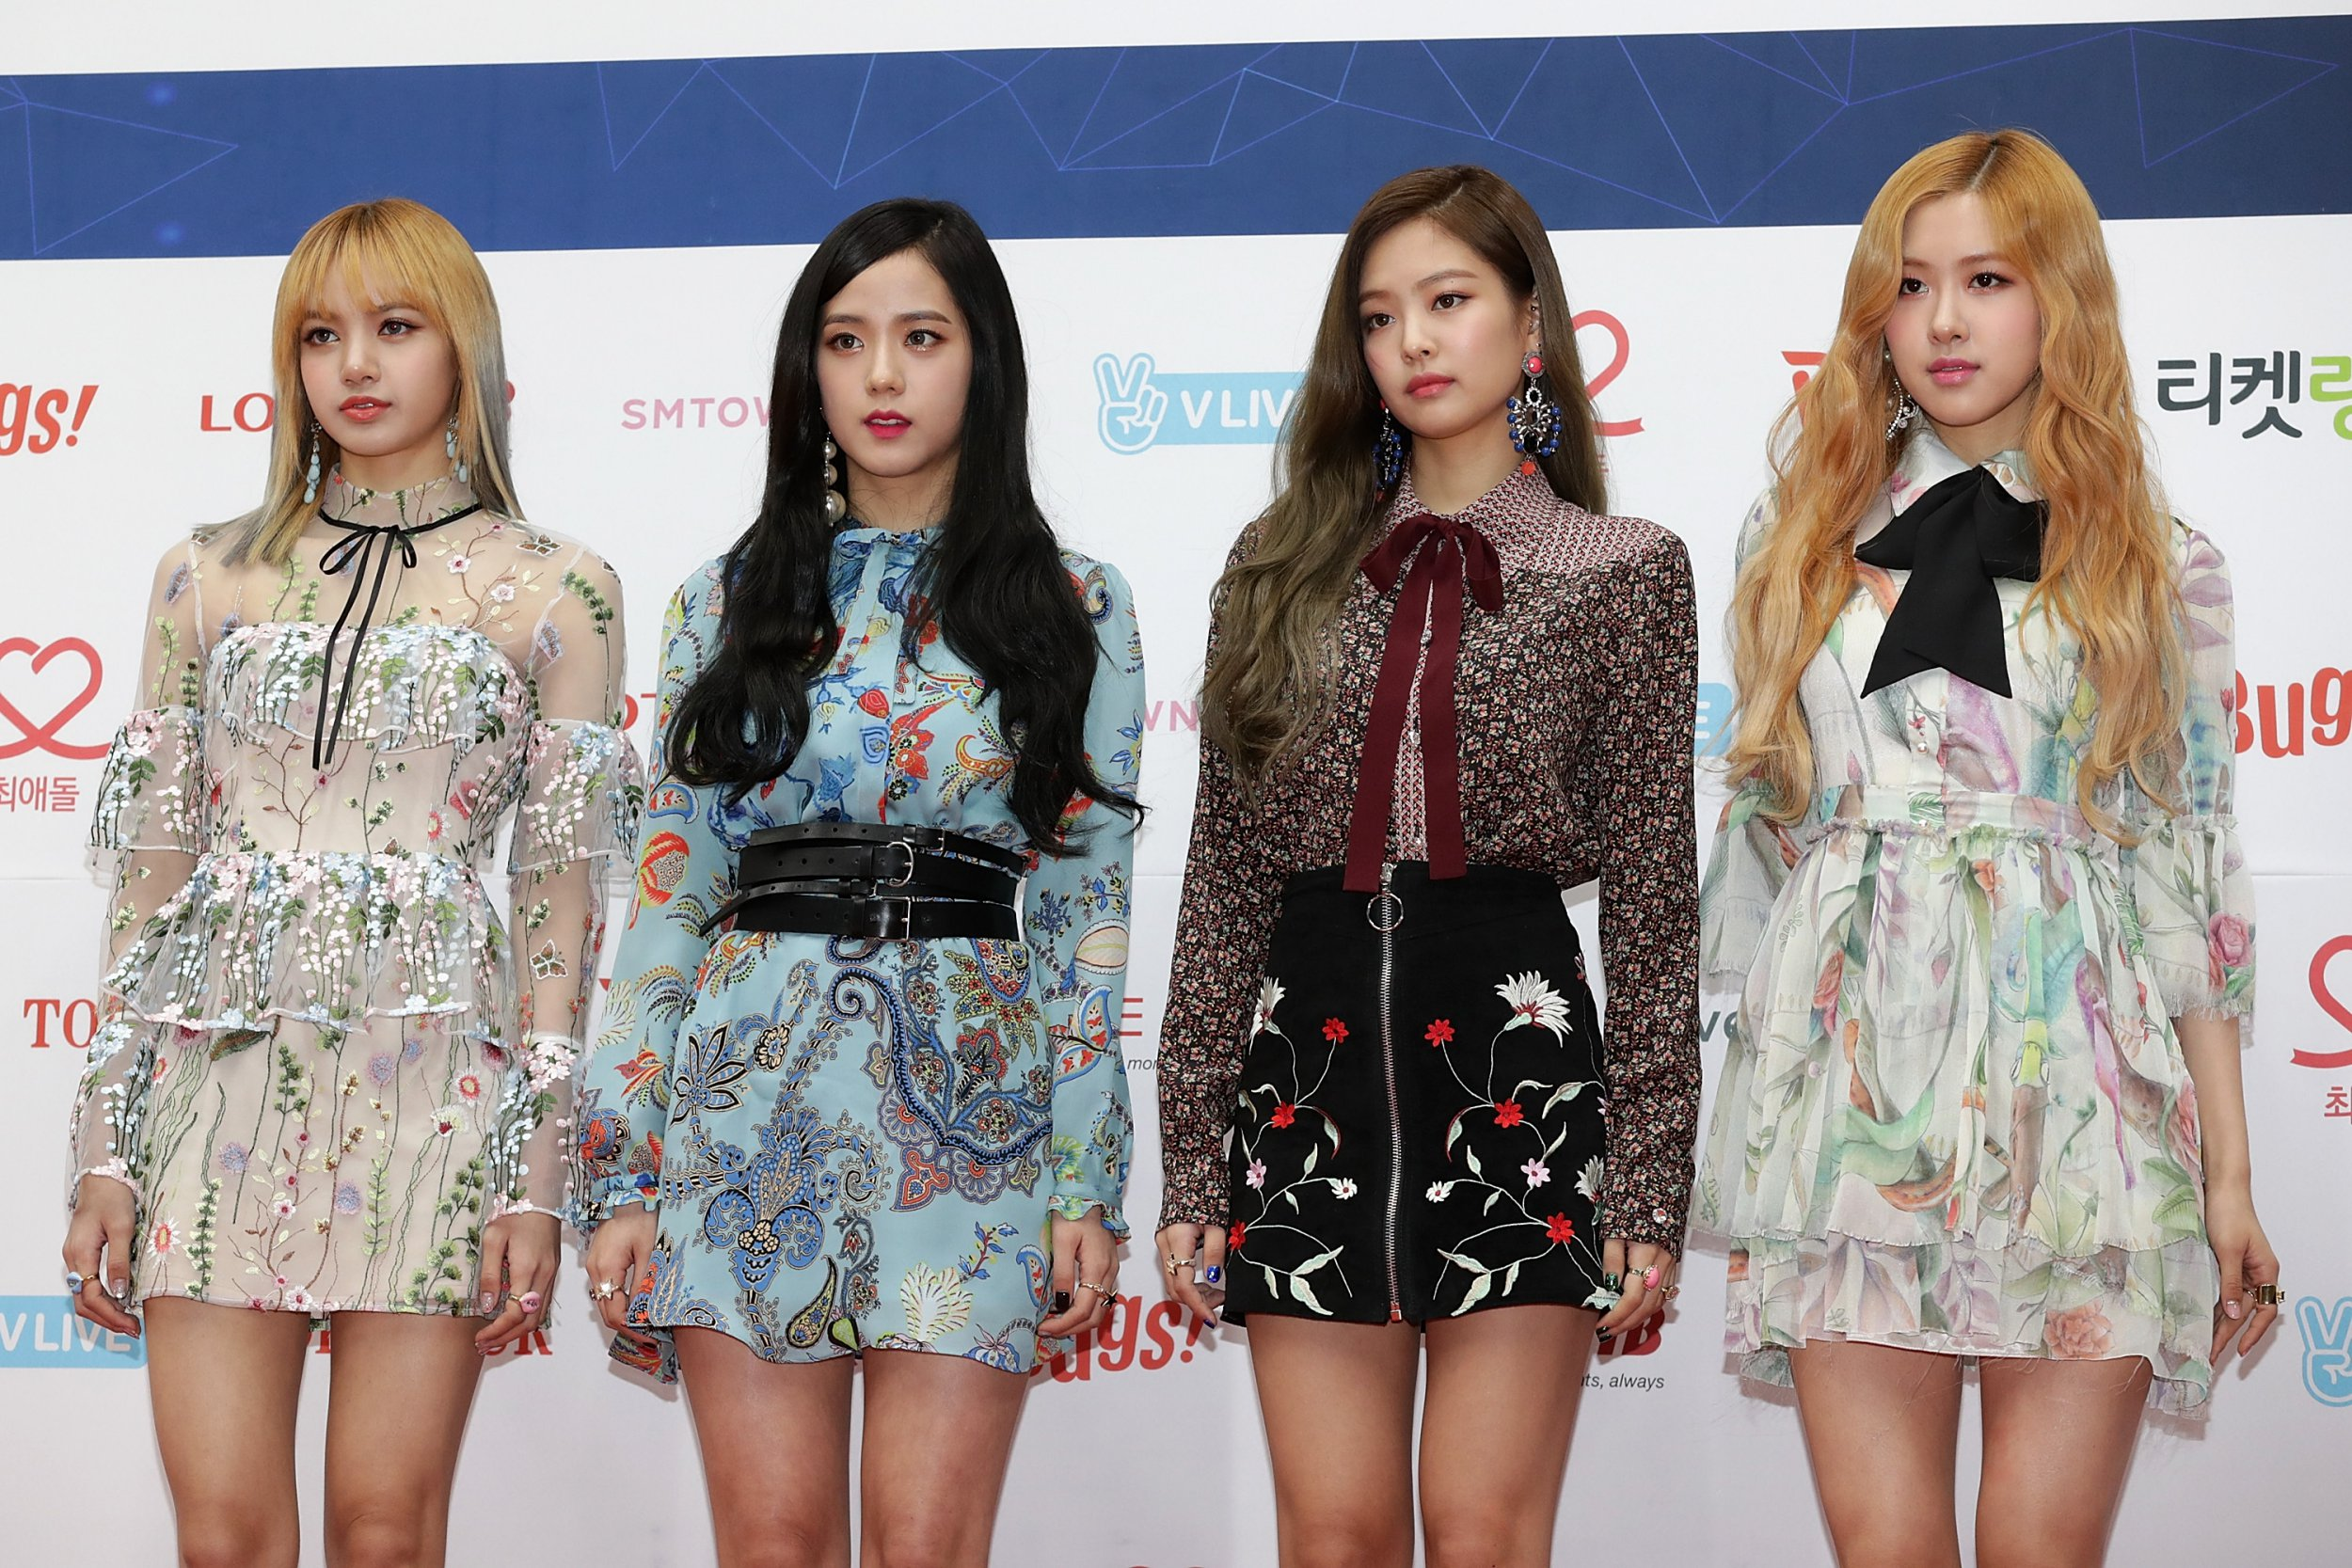 SEOUL, SOUTH KOREA - FEBRUARY 22: Girl group BLACKPINK attend the 6th Gaon Chart K-Pop Awards on February 22, 2017 in Seoul, South Korea. (Photo by Han Myung-Gu/WireImage)